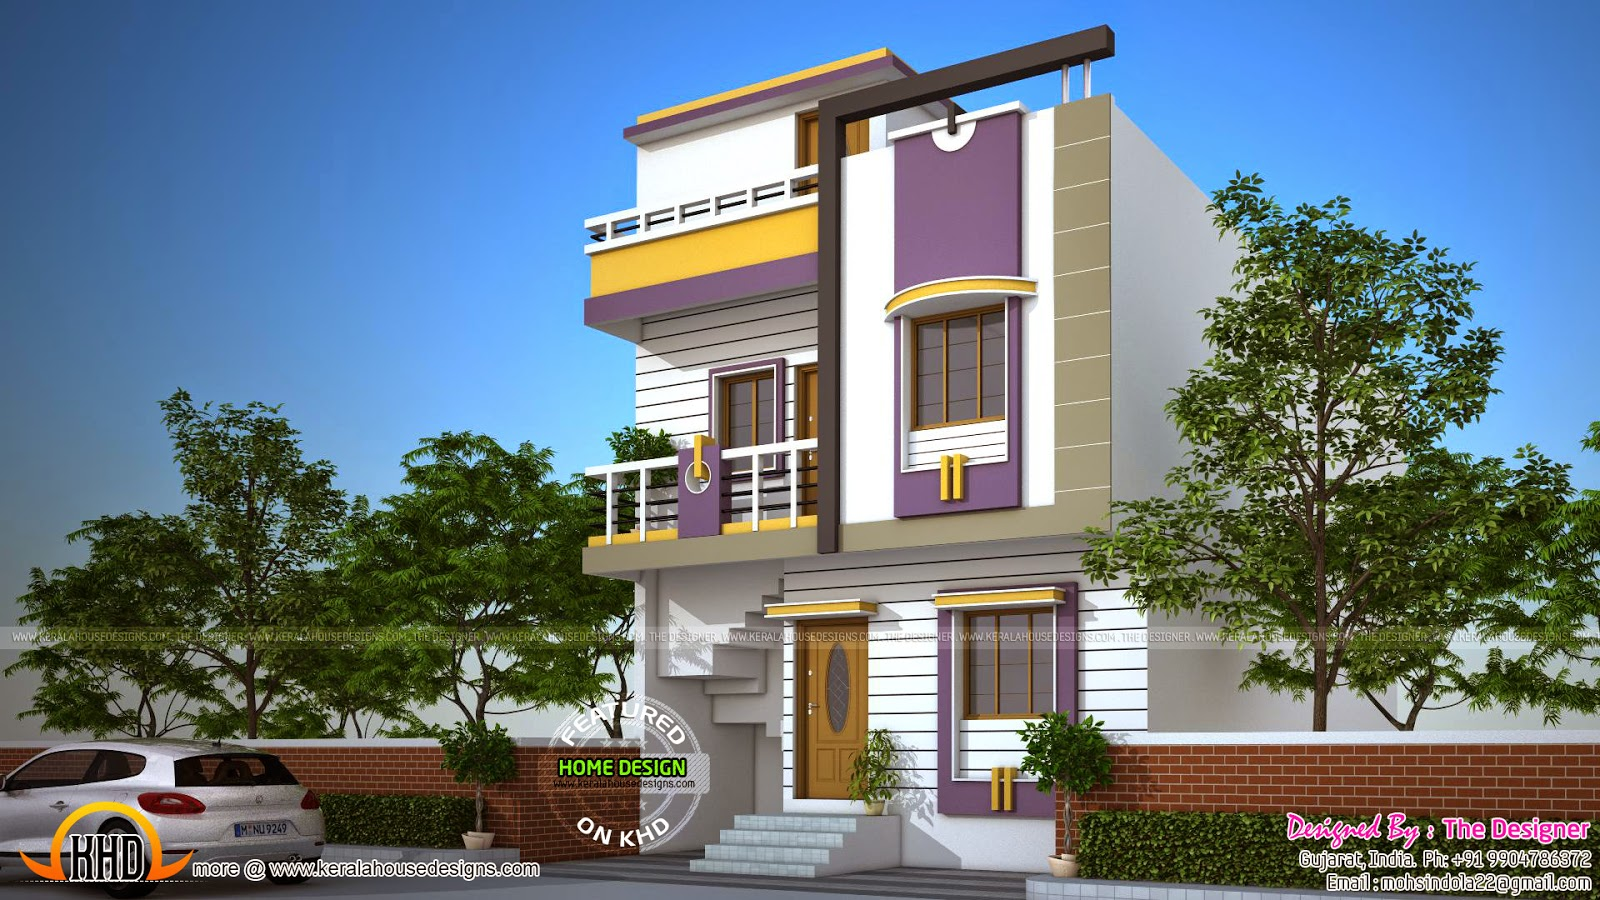 1828 Sq Ft Gujarat Home Design